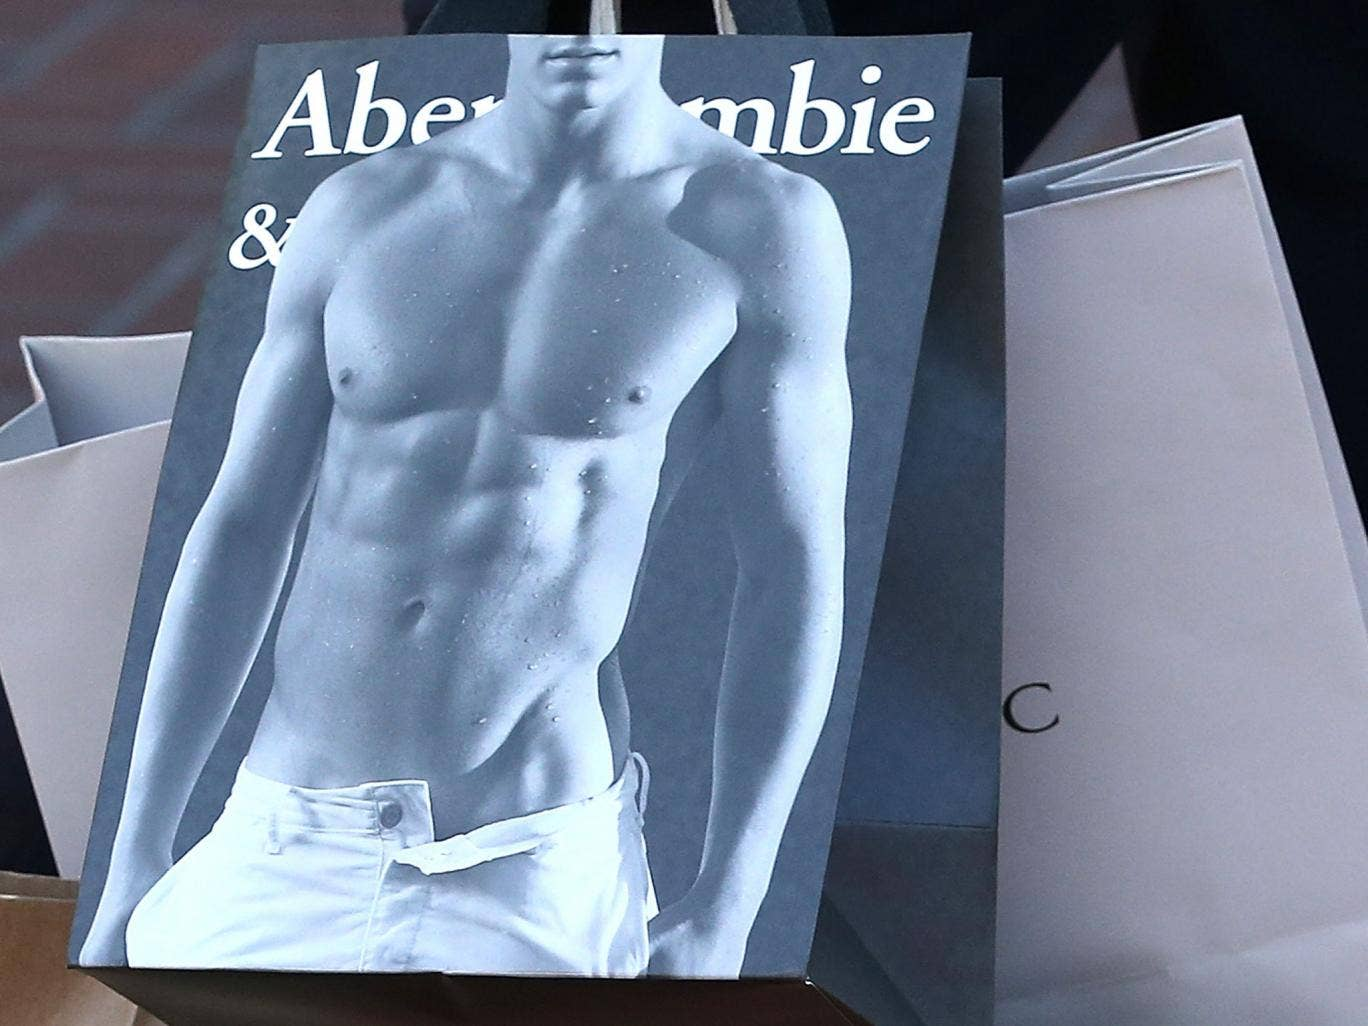 Abercrombie & Fitch bags feature fit young models